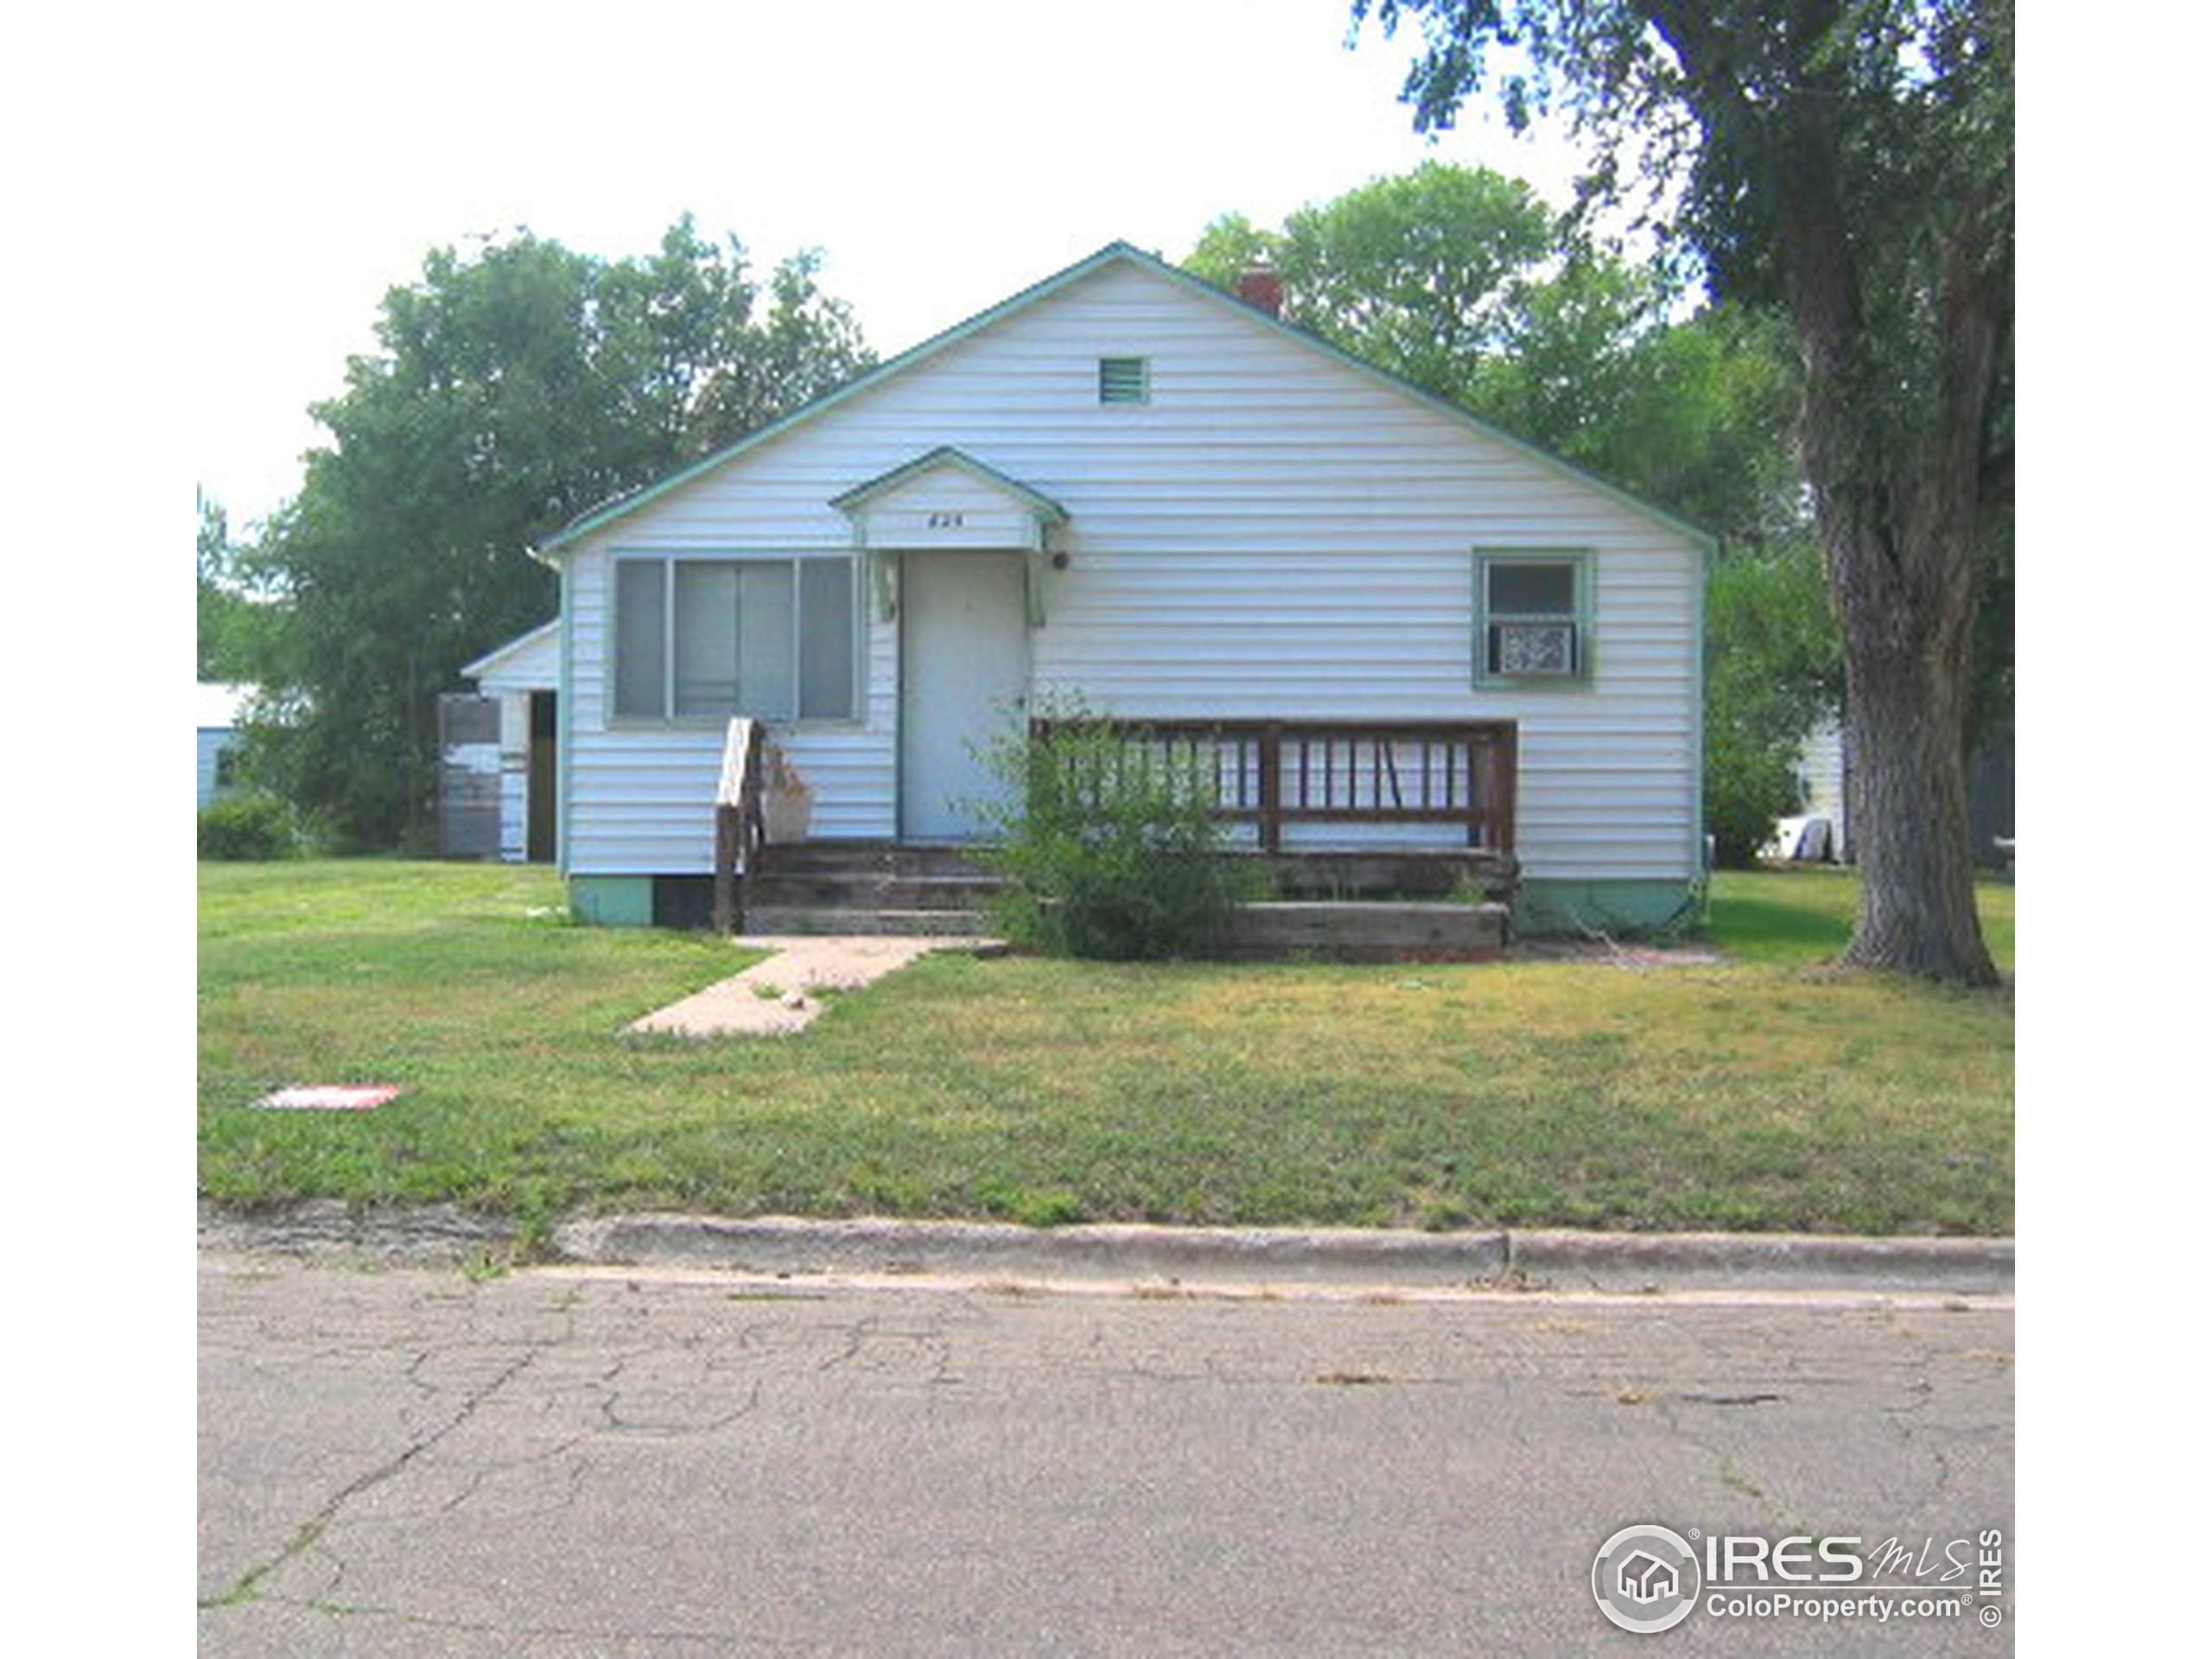 3817 W 12th St Rd, Greeley, CO 80634 (MLS #907883) :: 8z Real Estate